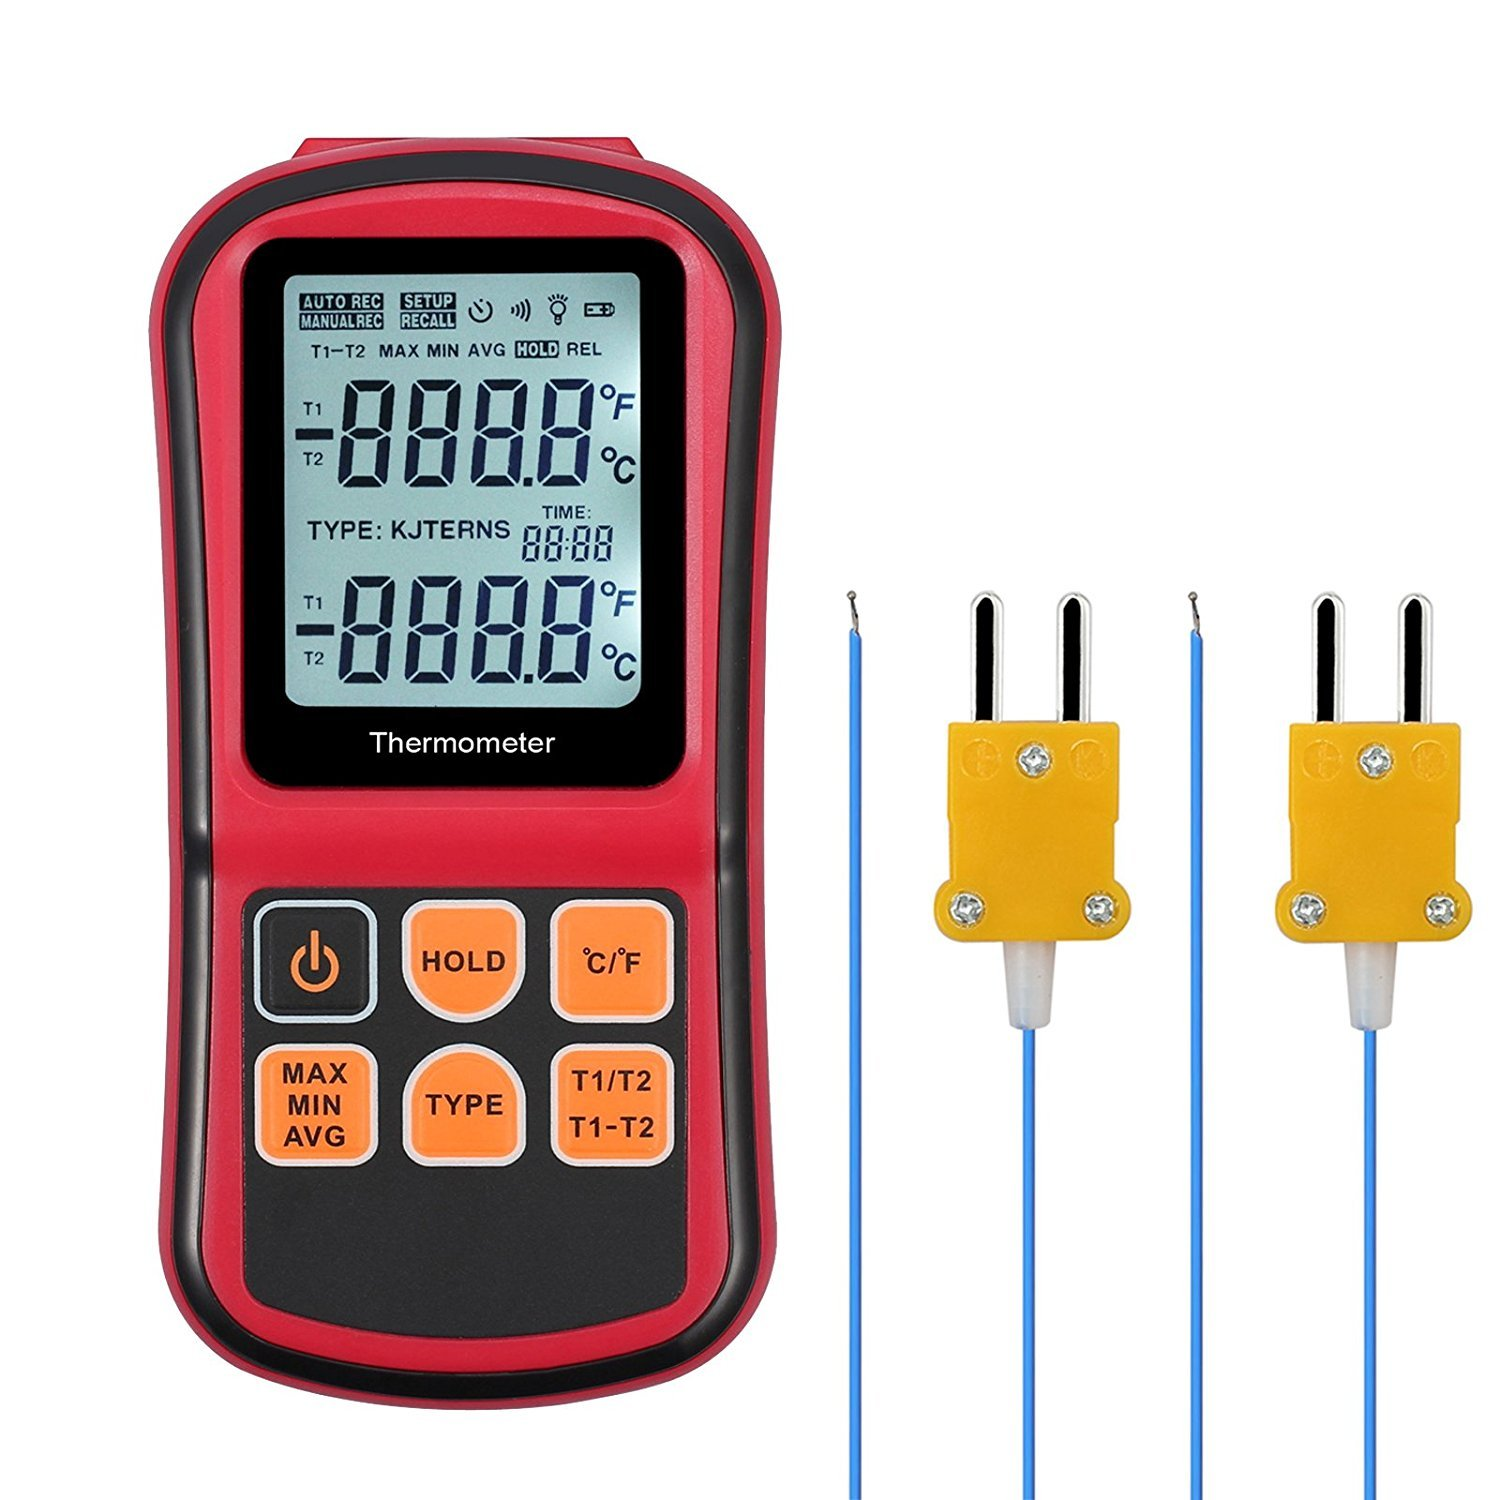 Kamtop Digital Thermometer Dual Channel Thermometer with Two K- type Thermocouples Temperature Meter with LCD Backlight for K/ J/ T/ E/ R/ S/ N Thermocouple by Kamtop